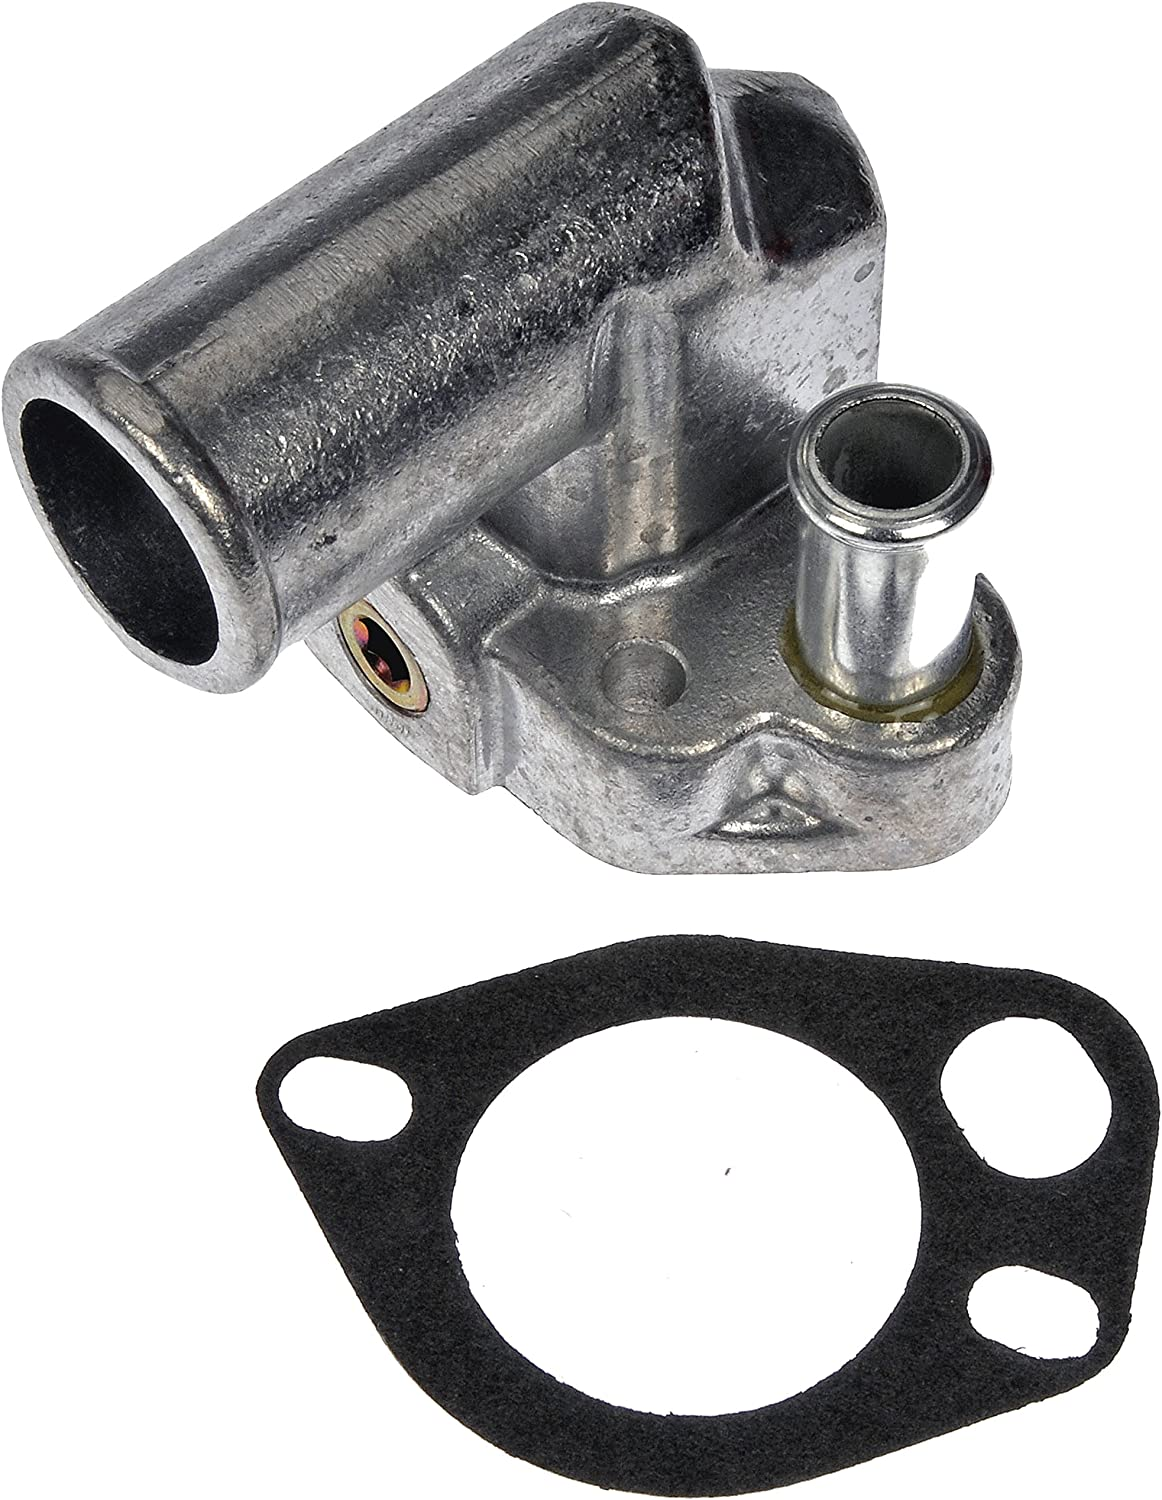 Thermostat Housing M-8592-M90 Ford Racing